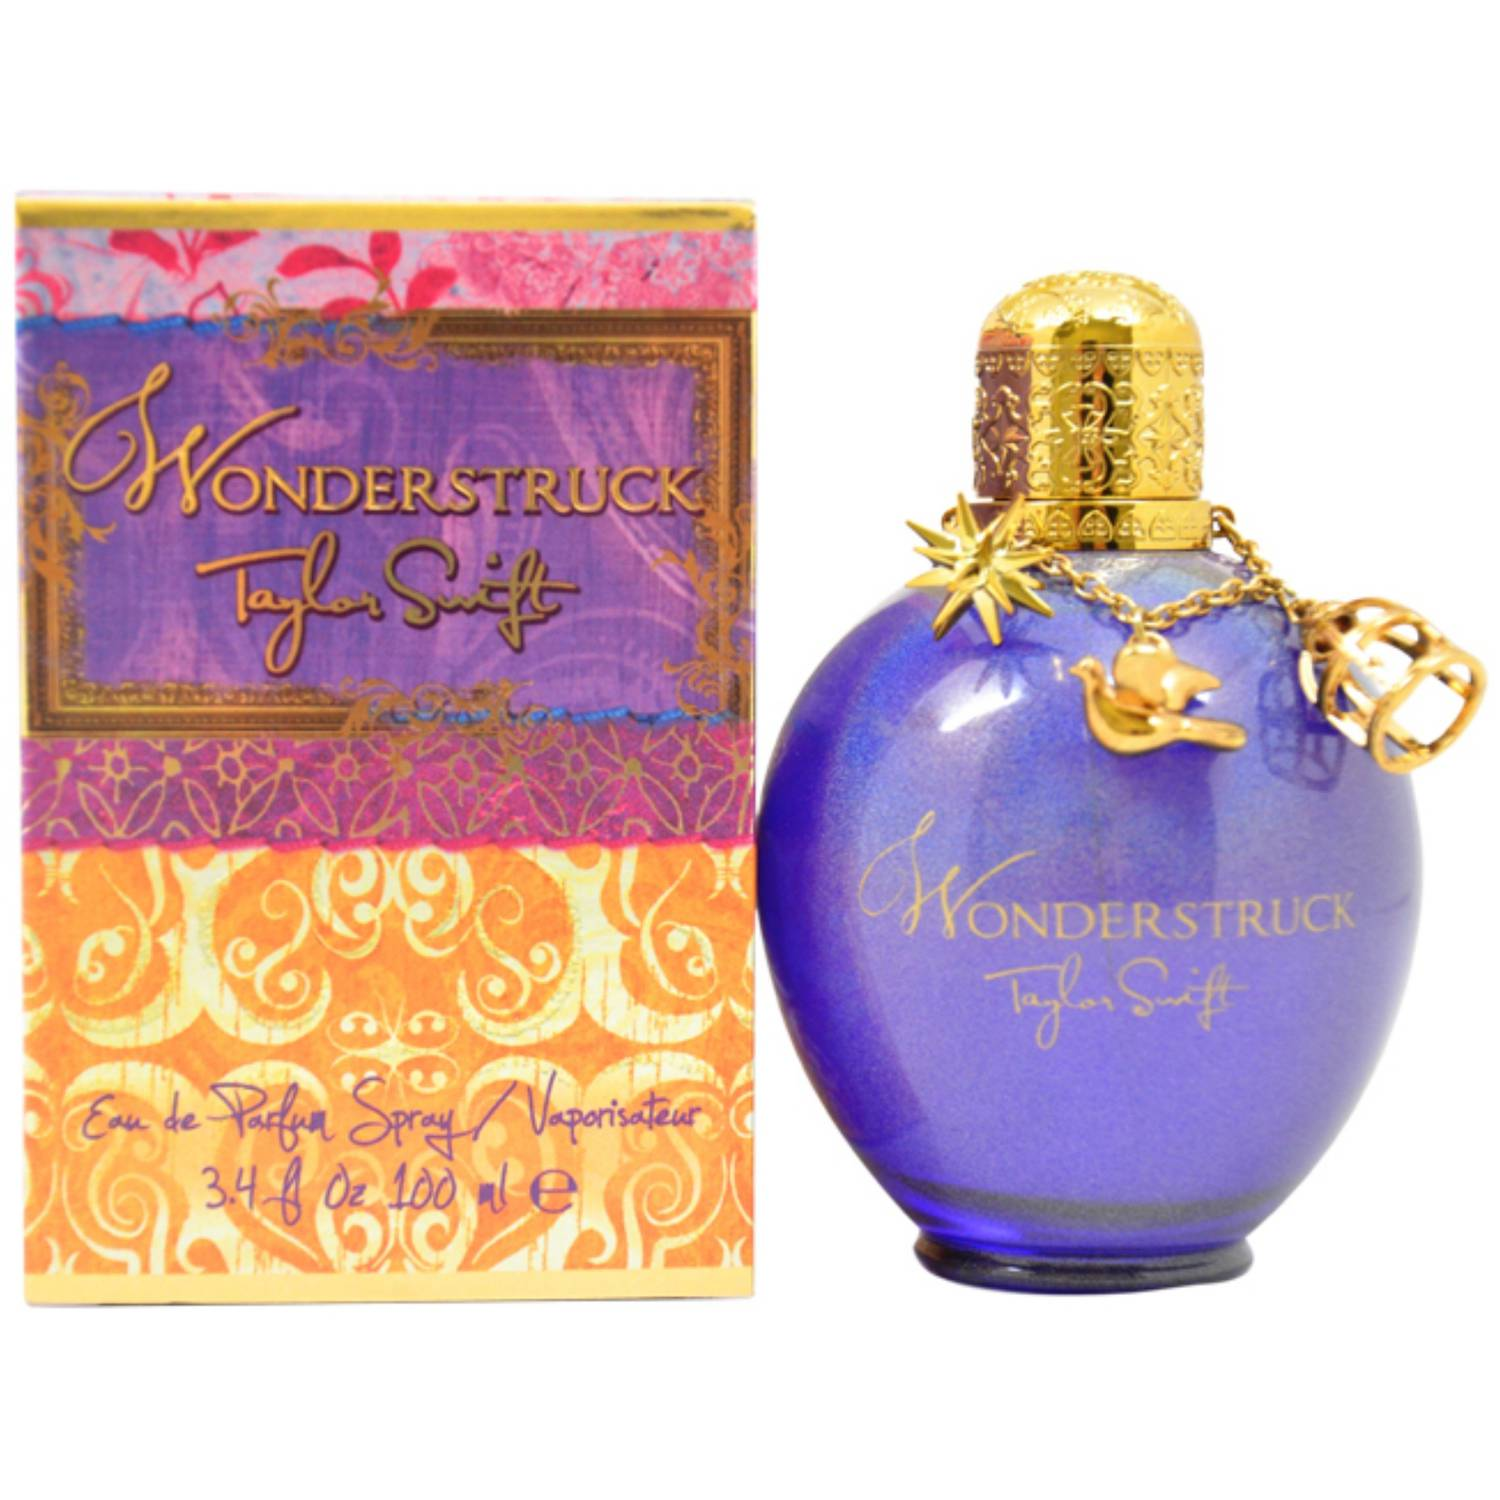 Taylor Swift Wonderstruck Women's EDP Spray, 3.4 fl oz